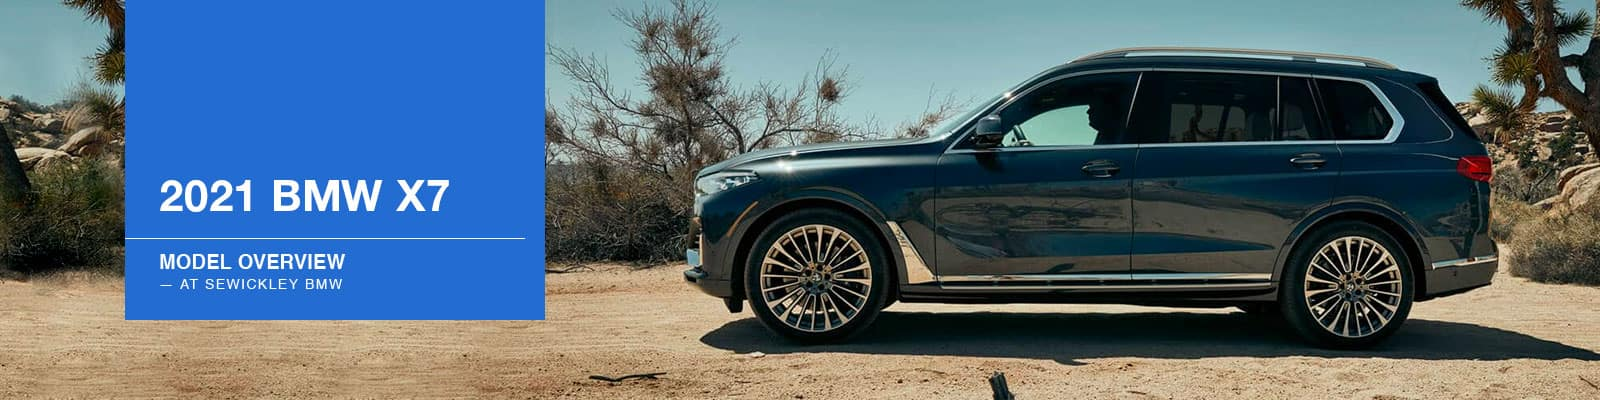 2021 BMW X7 Model Overview at Sewickley BMW